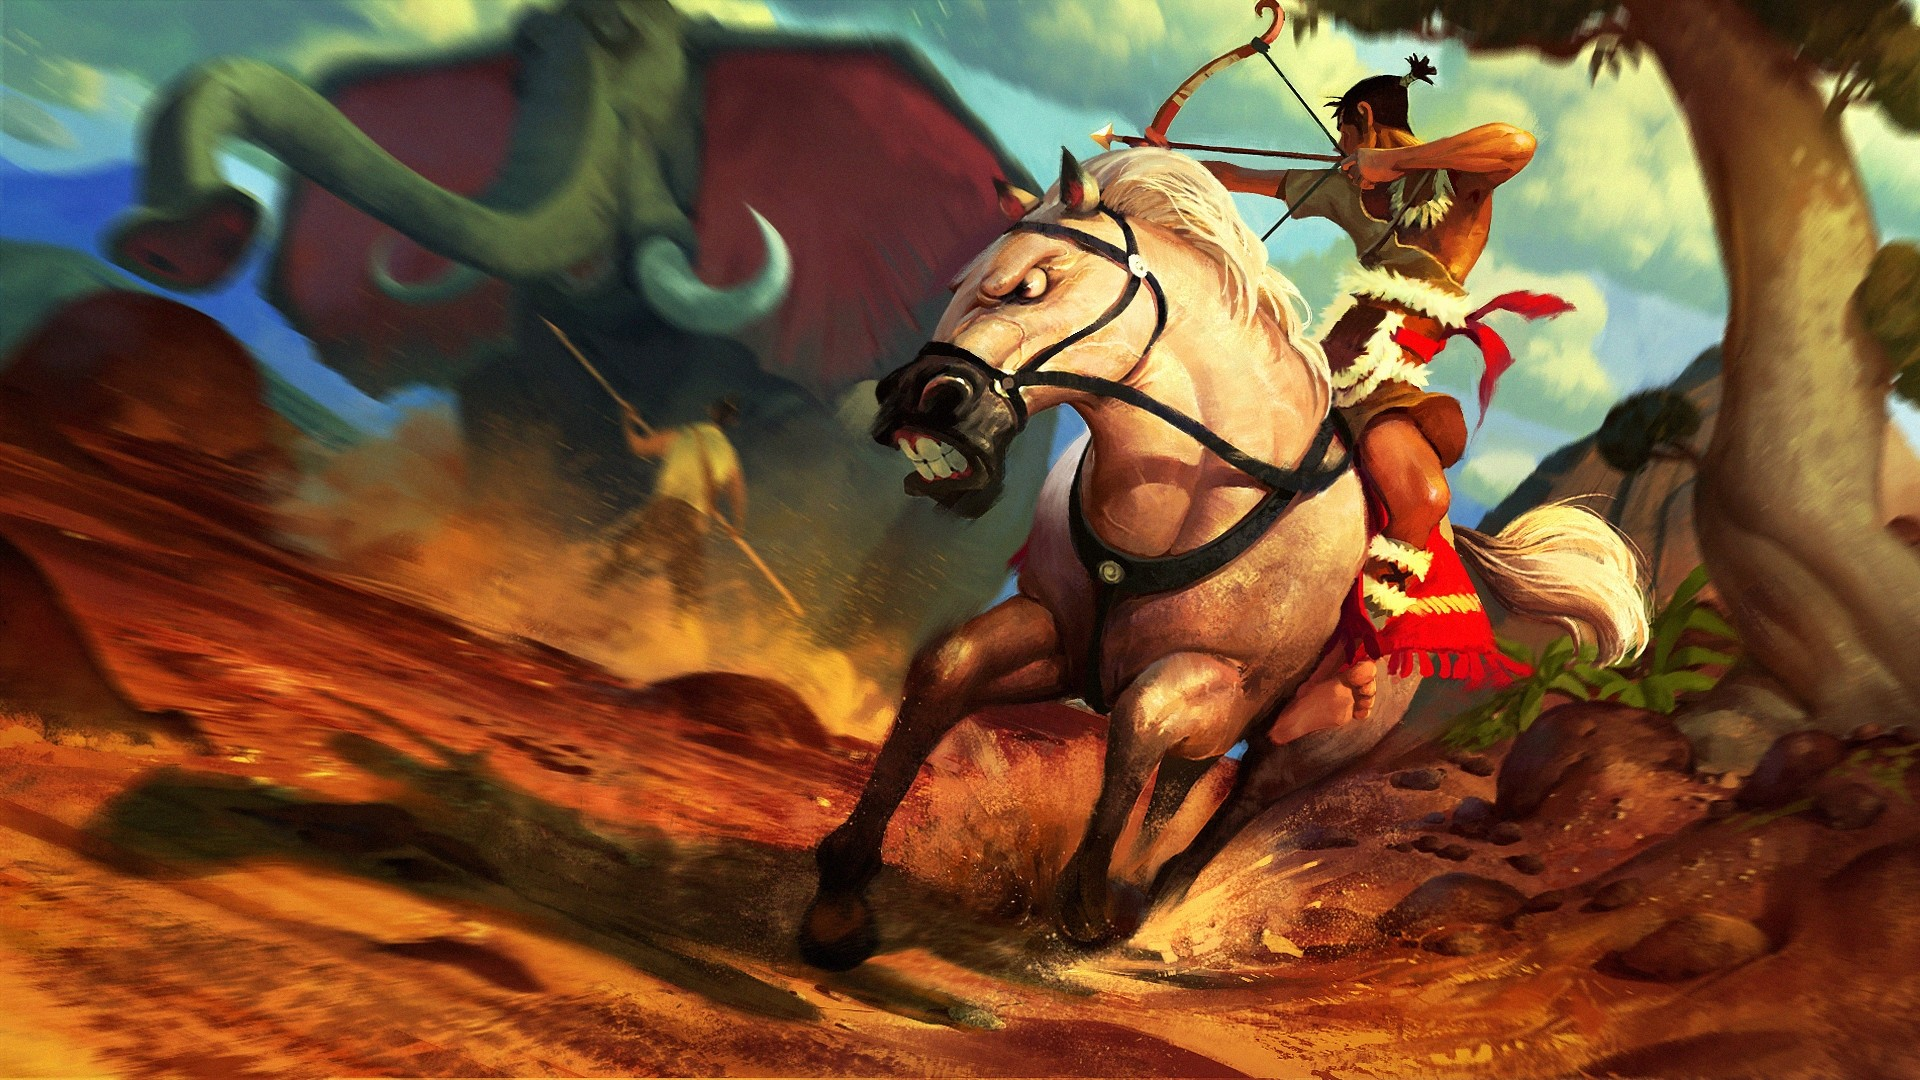 Rider On A Horse Art HD Download